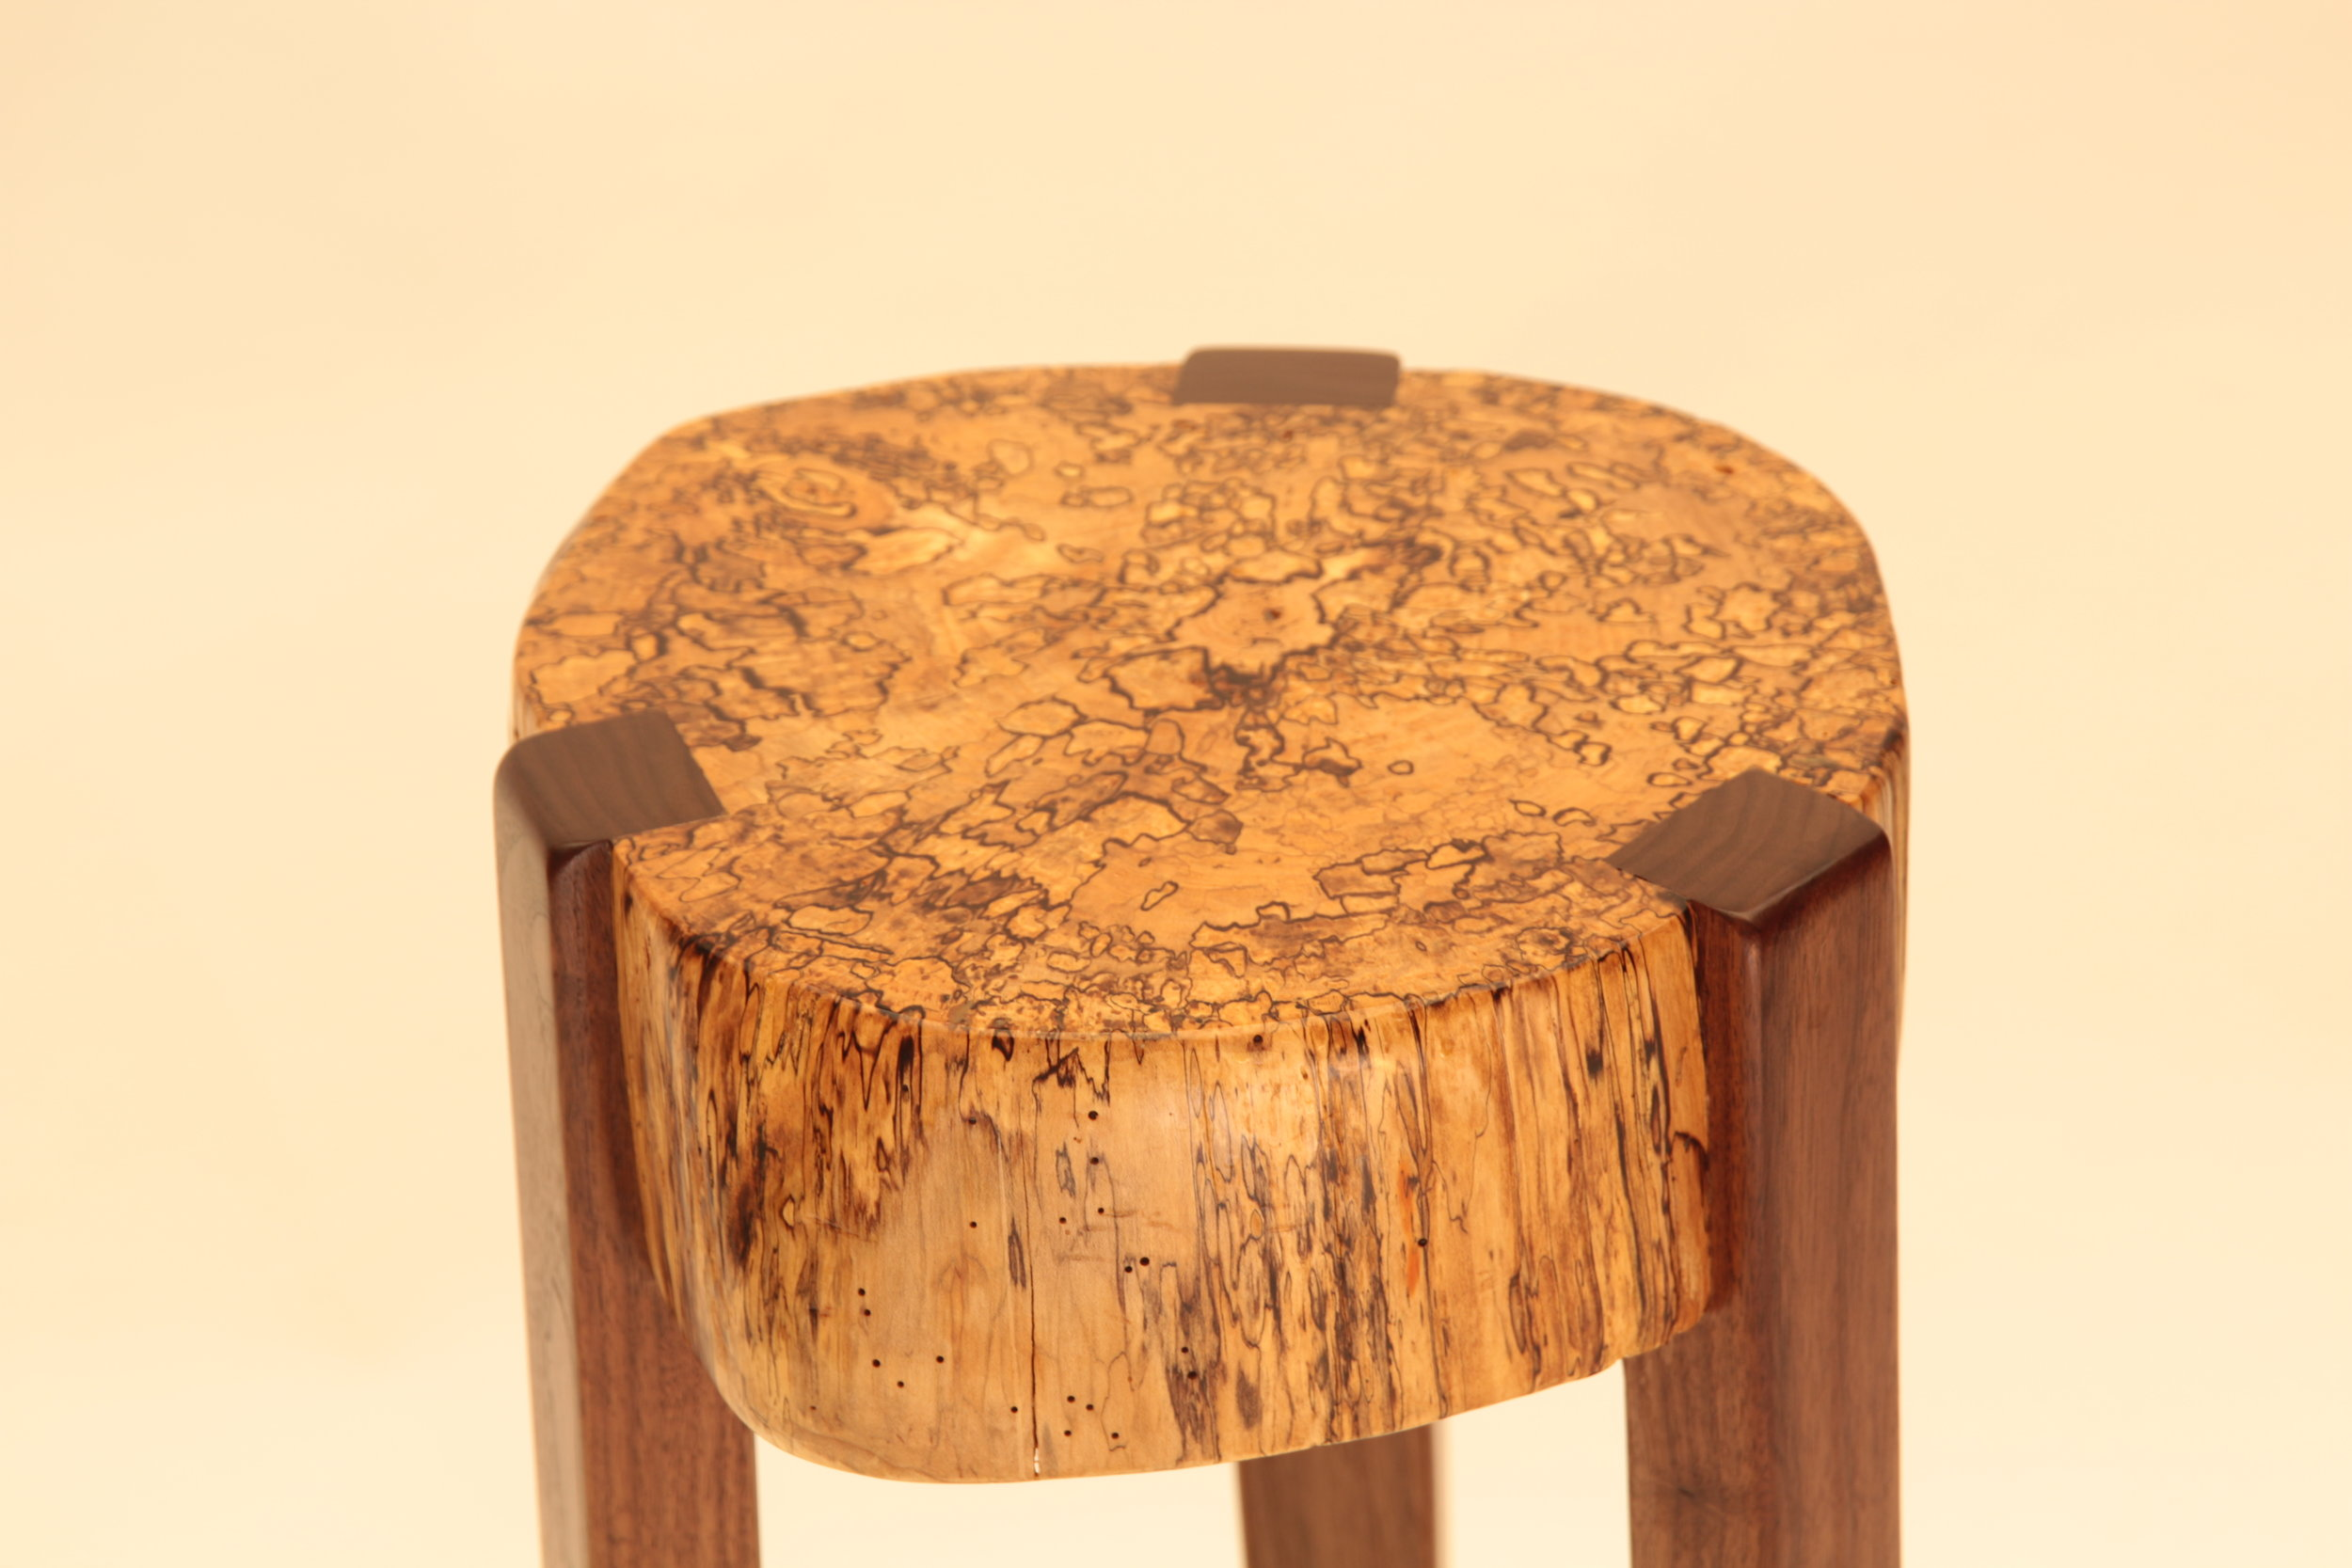 Tall Stump Table (detail view)